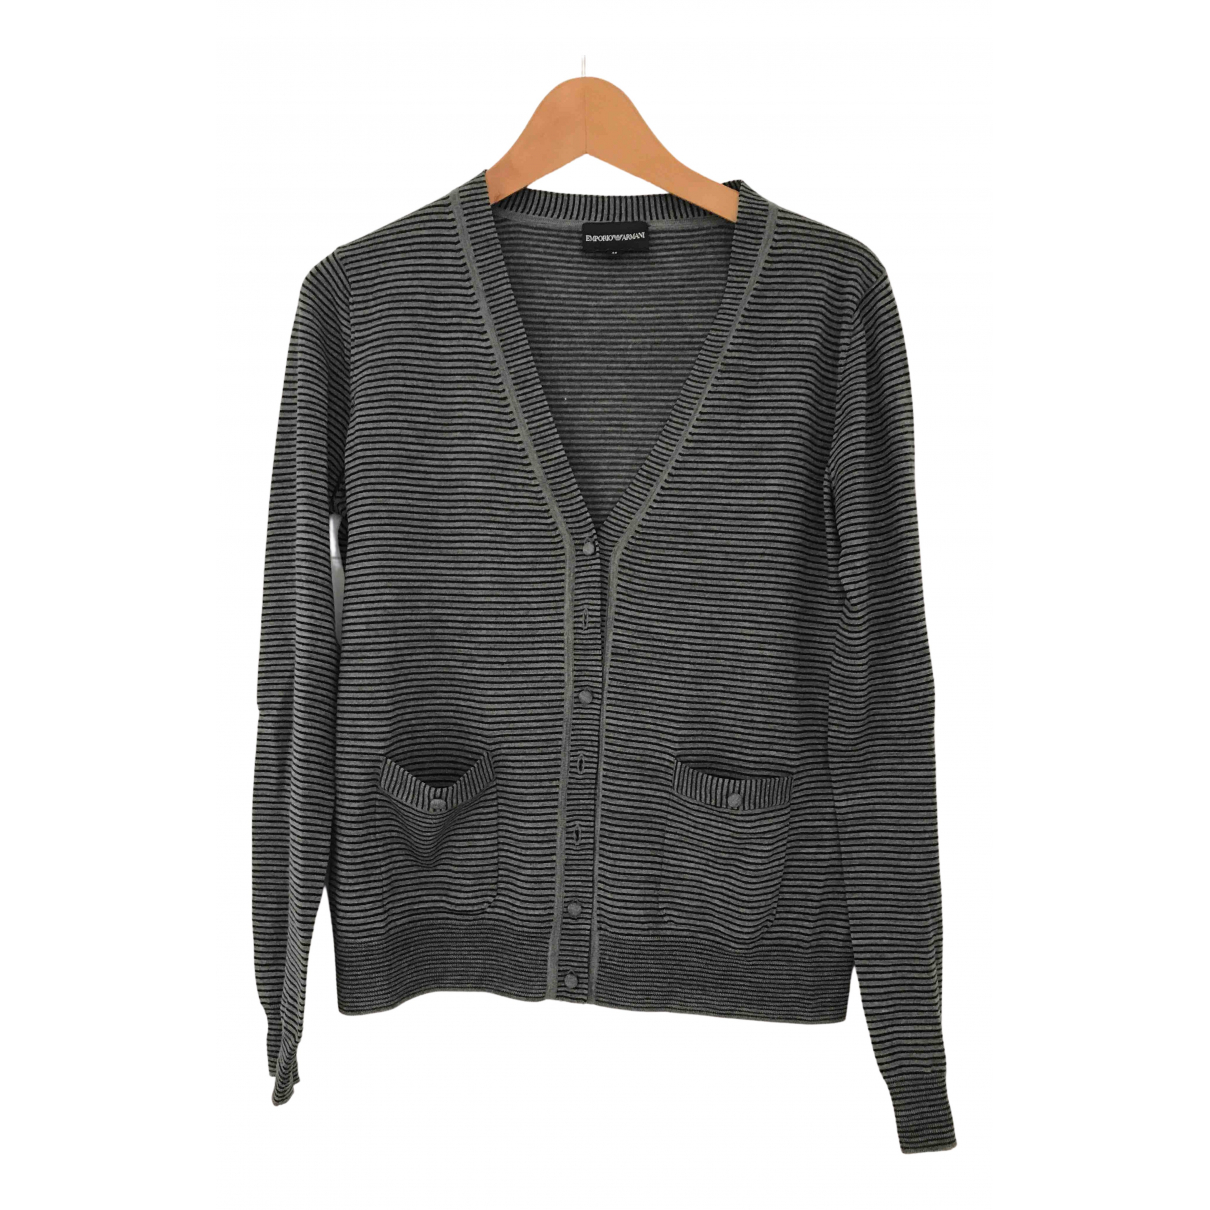 Emporio Armani N Grey jacket for Women 46 IT